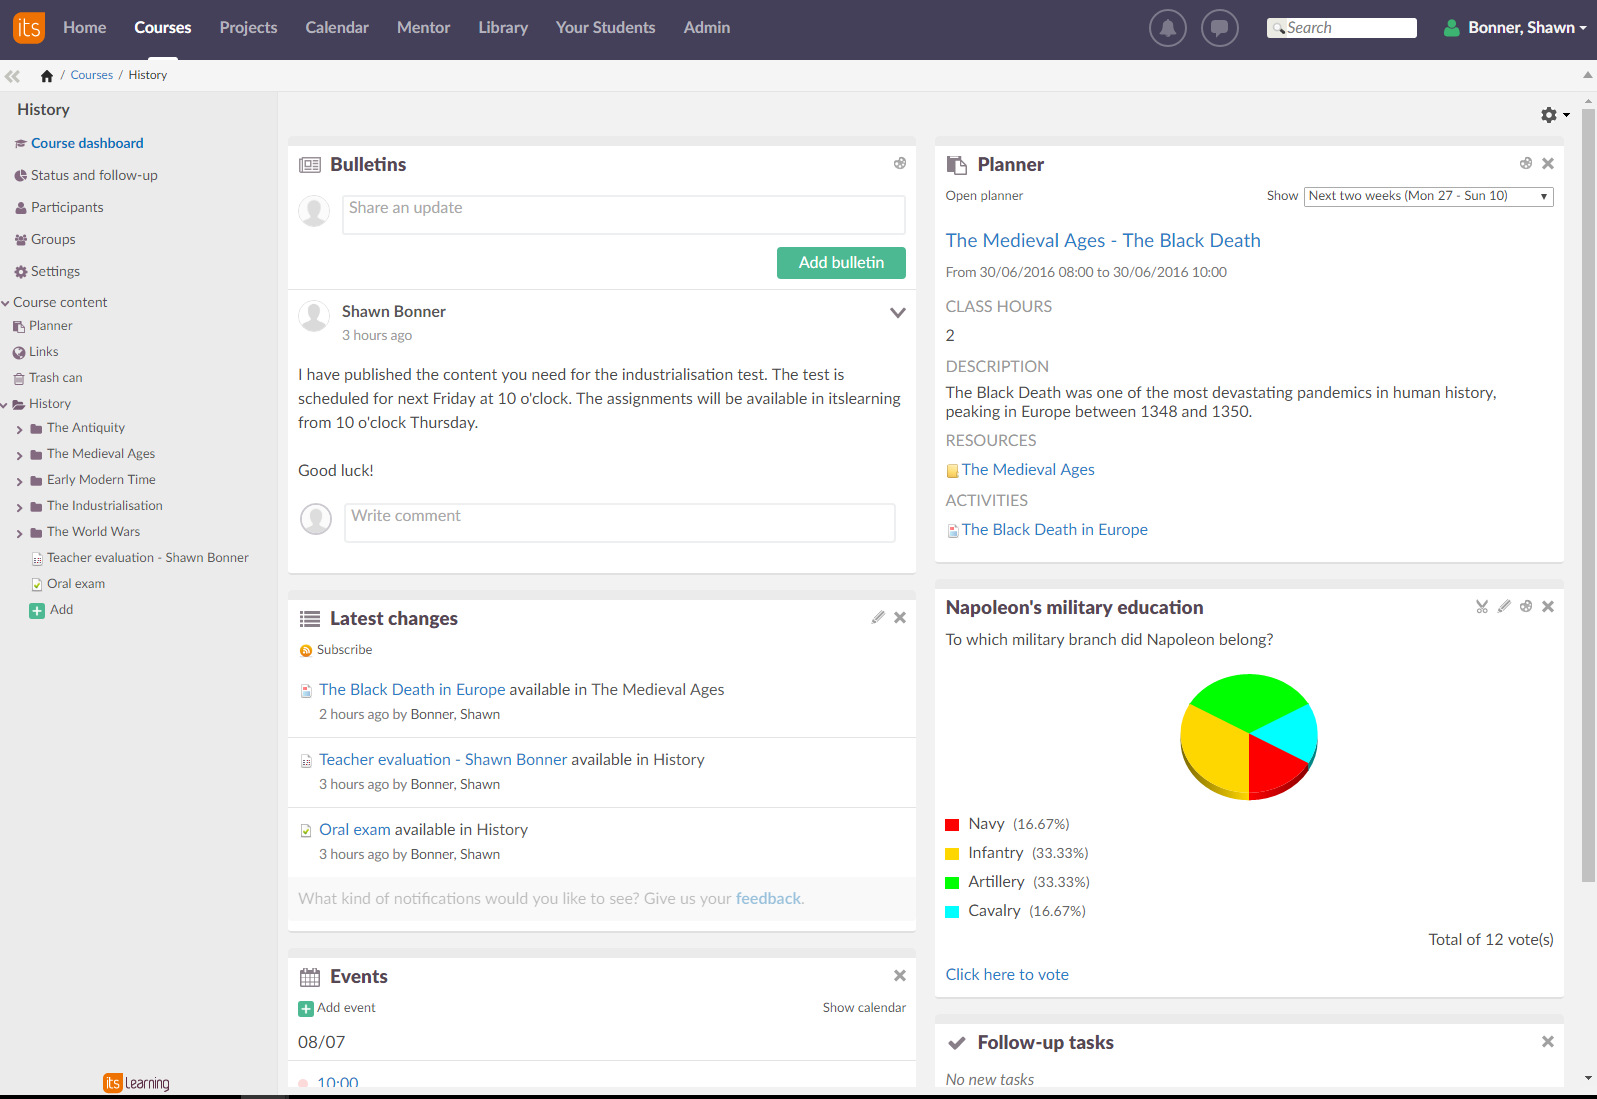 itslearning course dashboard